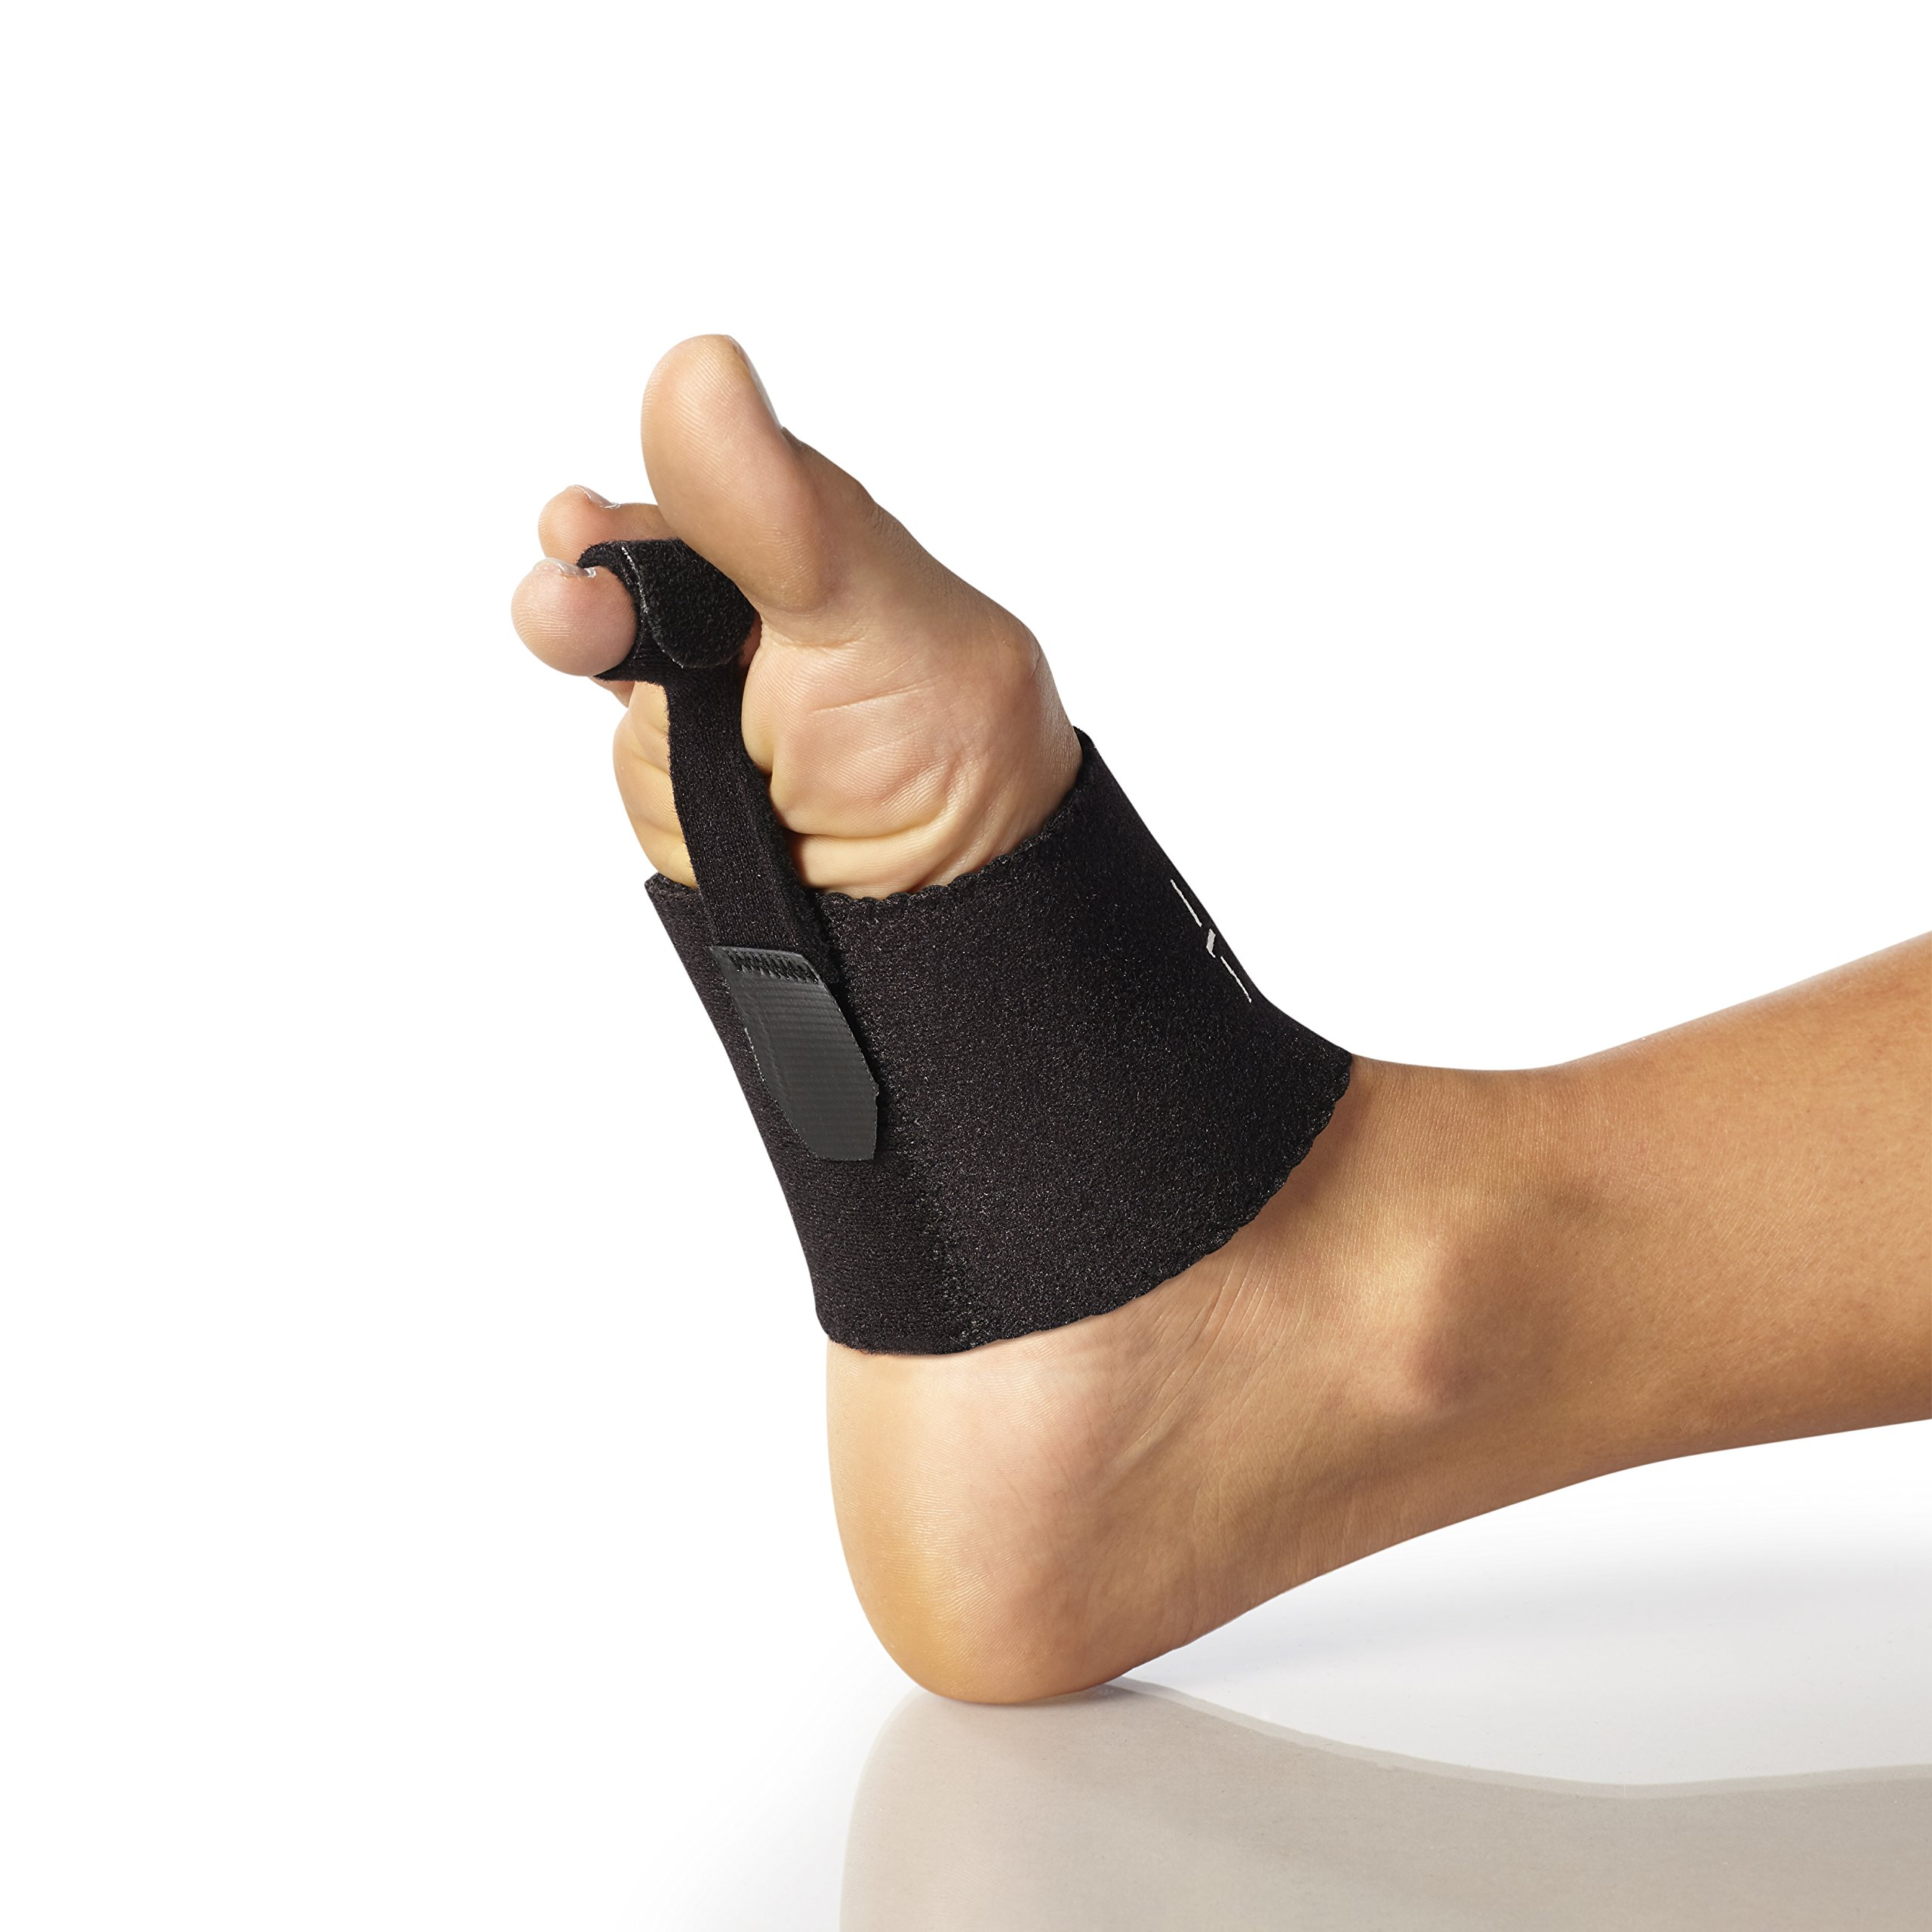 Hammer Toe Straightener for Metatarsalgia, Claw Toe, or Mallet Toe - Osteotomy Strap and Foot Compression Wrap - by BioSkin by BIOSKIN